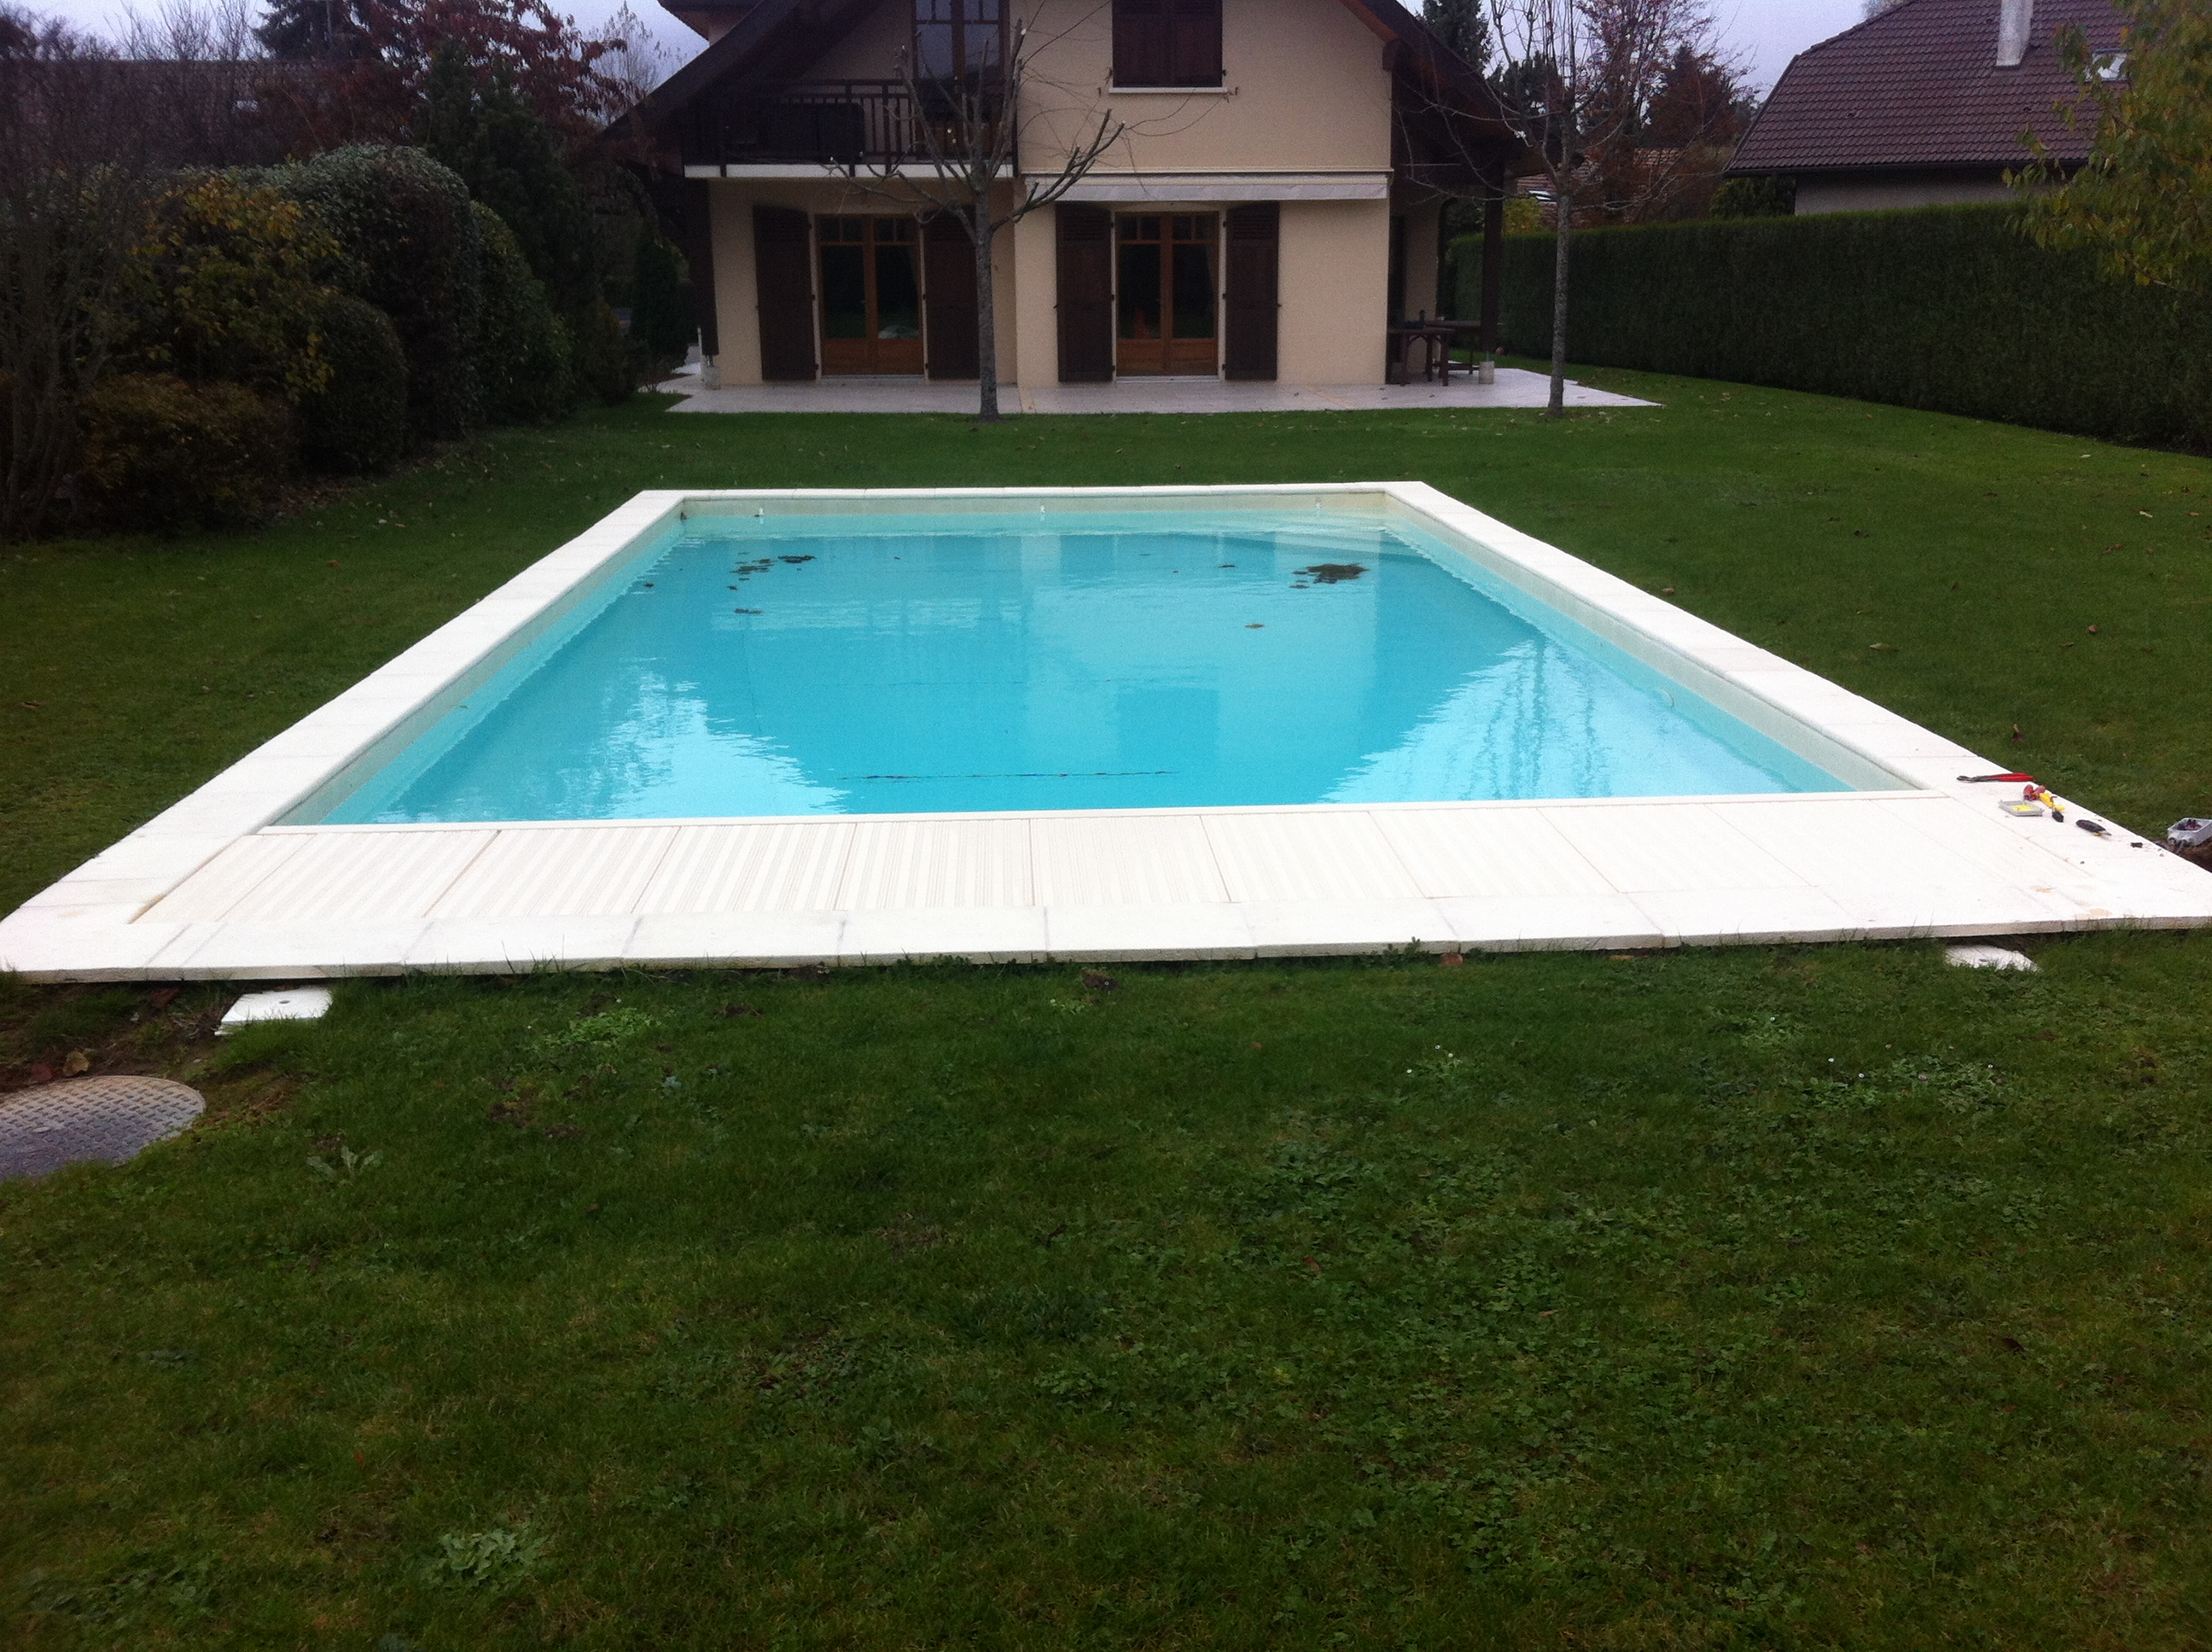 construction de piscine ext rieure annecy construction piscine exterieure sur mesure aix les bains. Black Bedroom Furniture Sets. Home Design Ideas